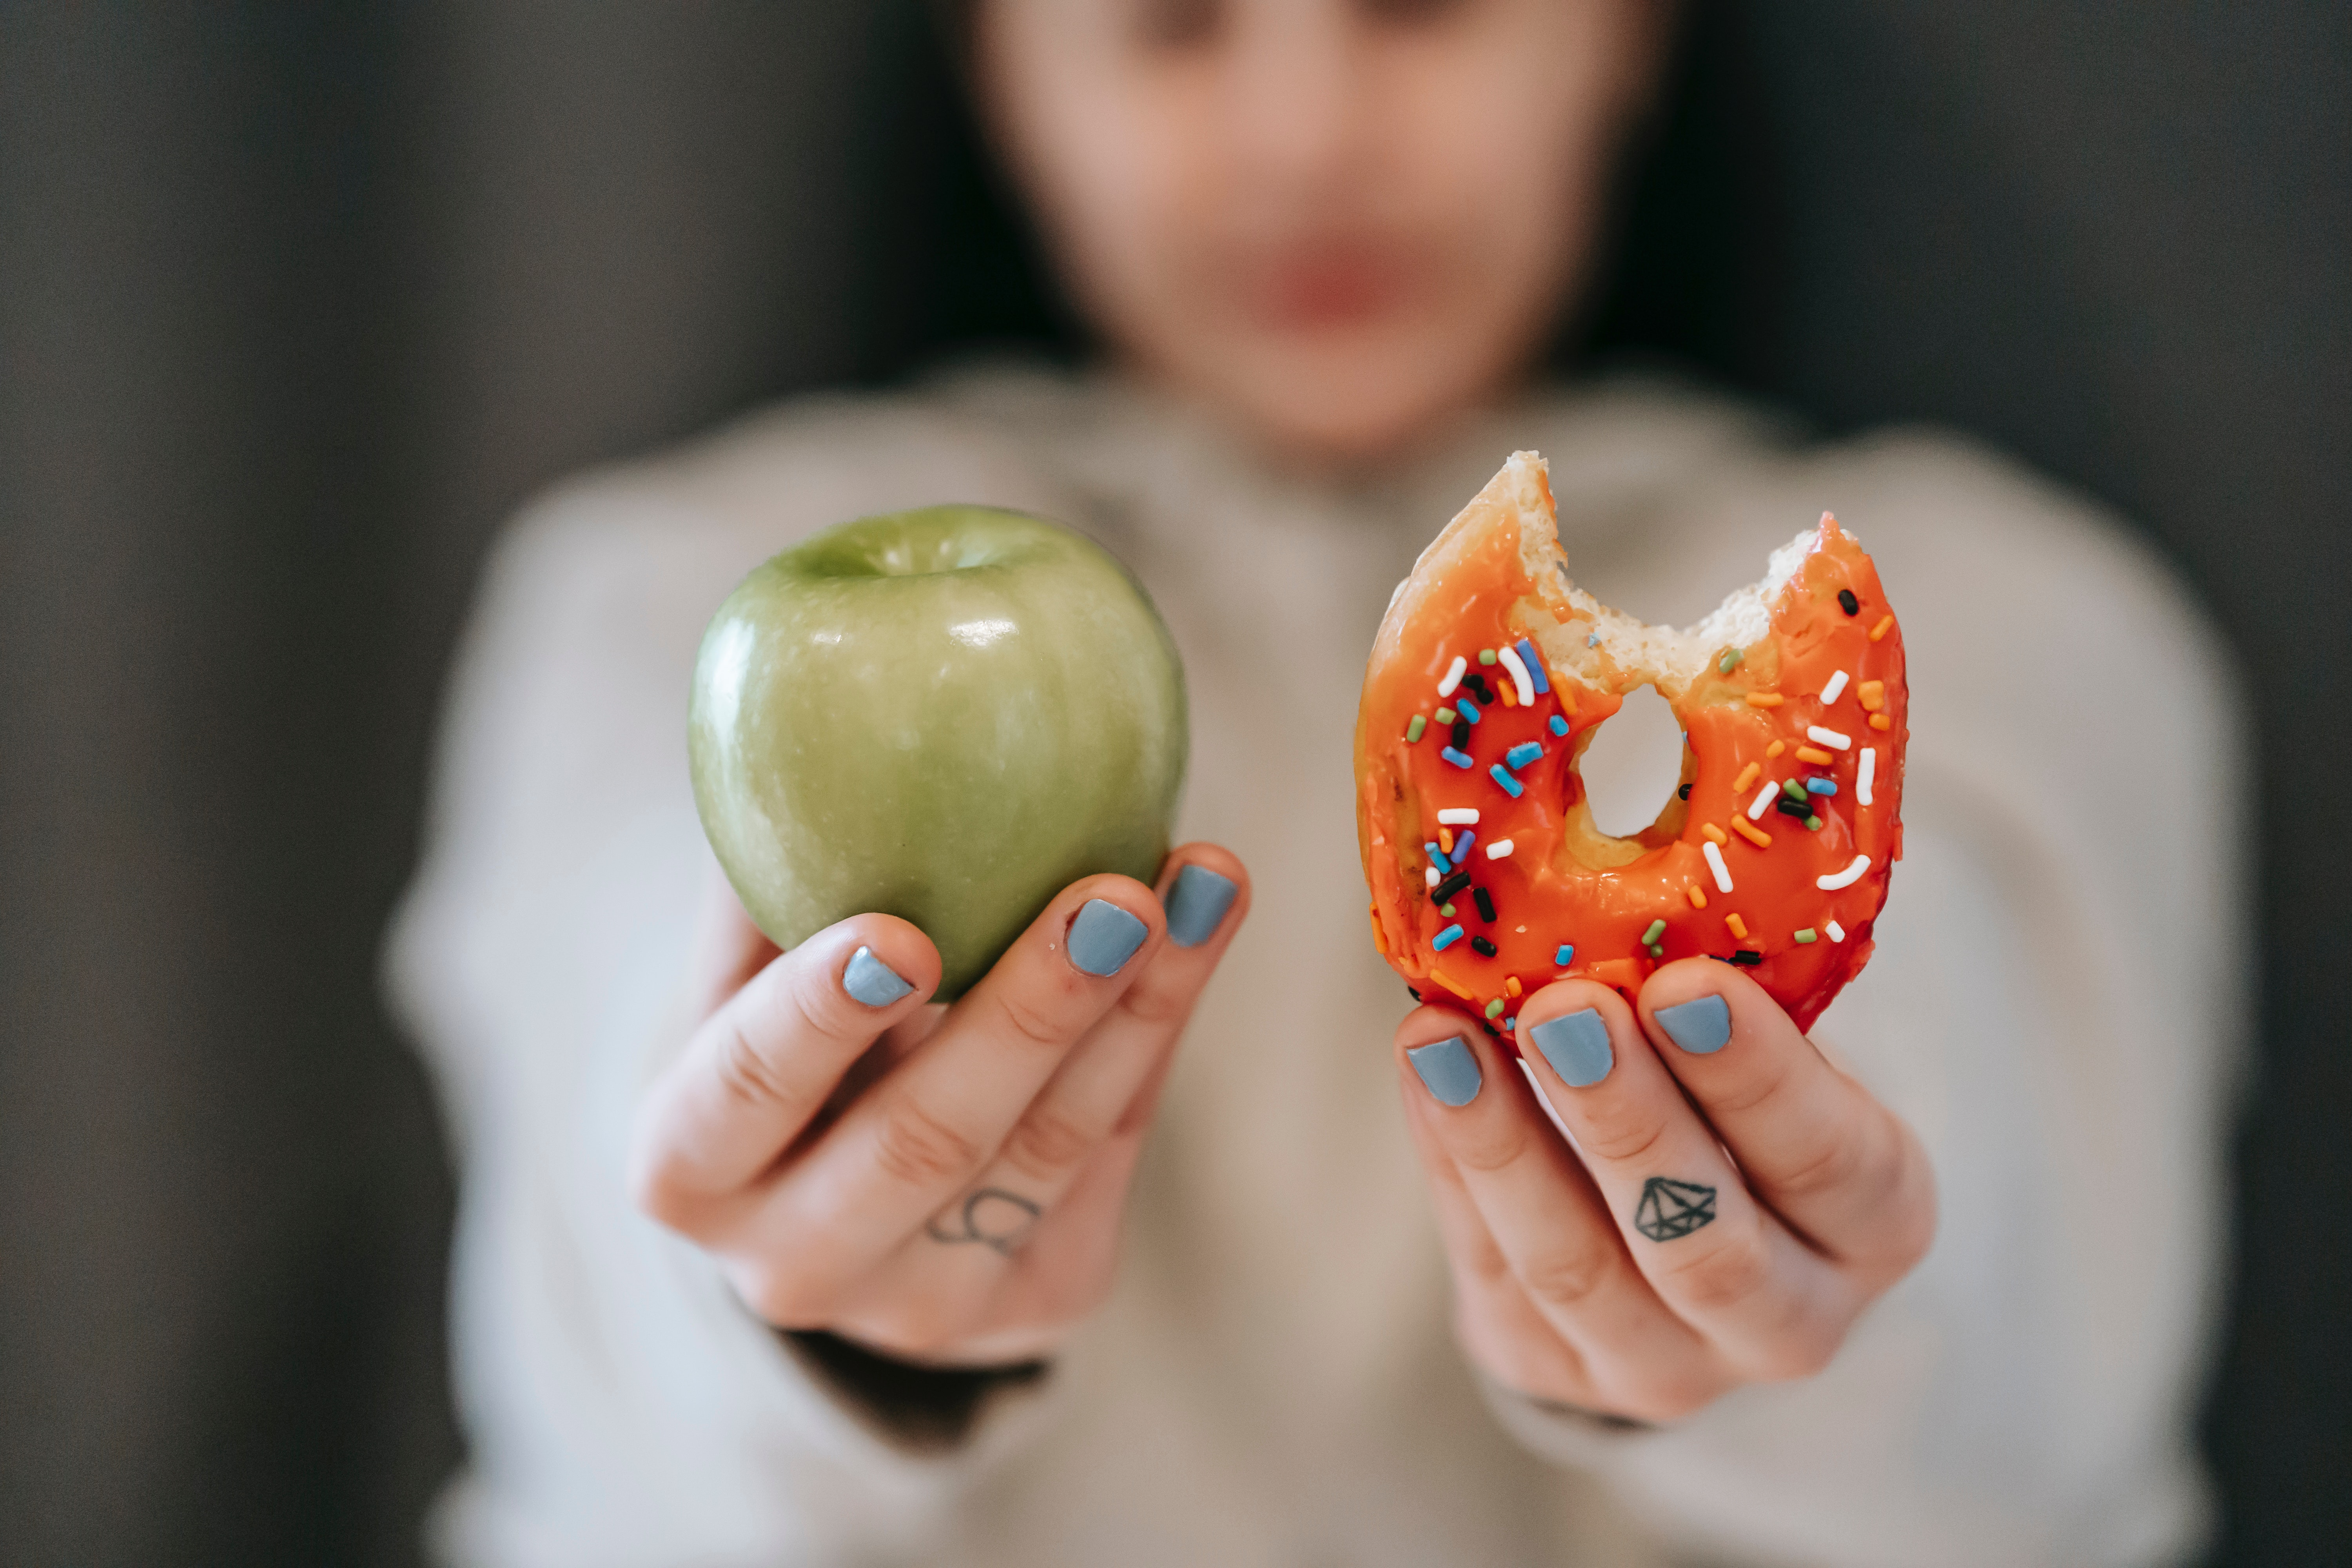 An employee who's physical wellbeing is tied to financial wellness holds a green apple and orange donut